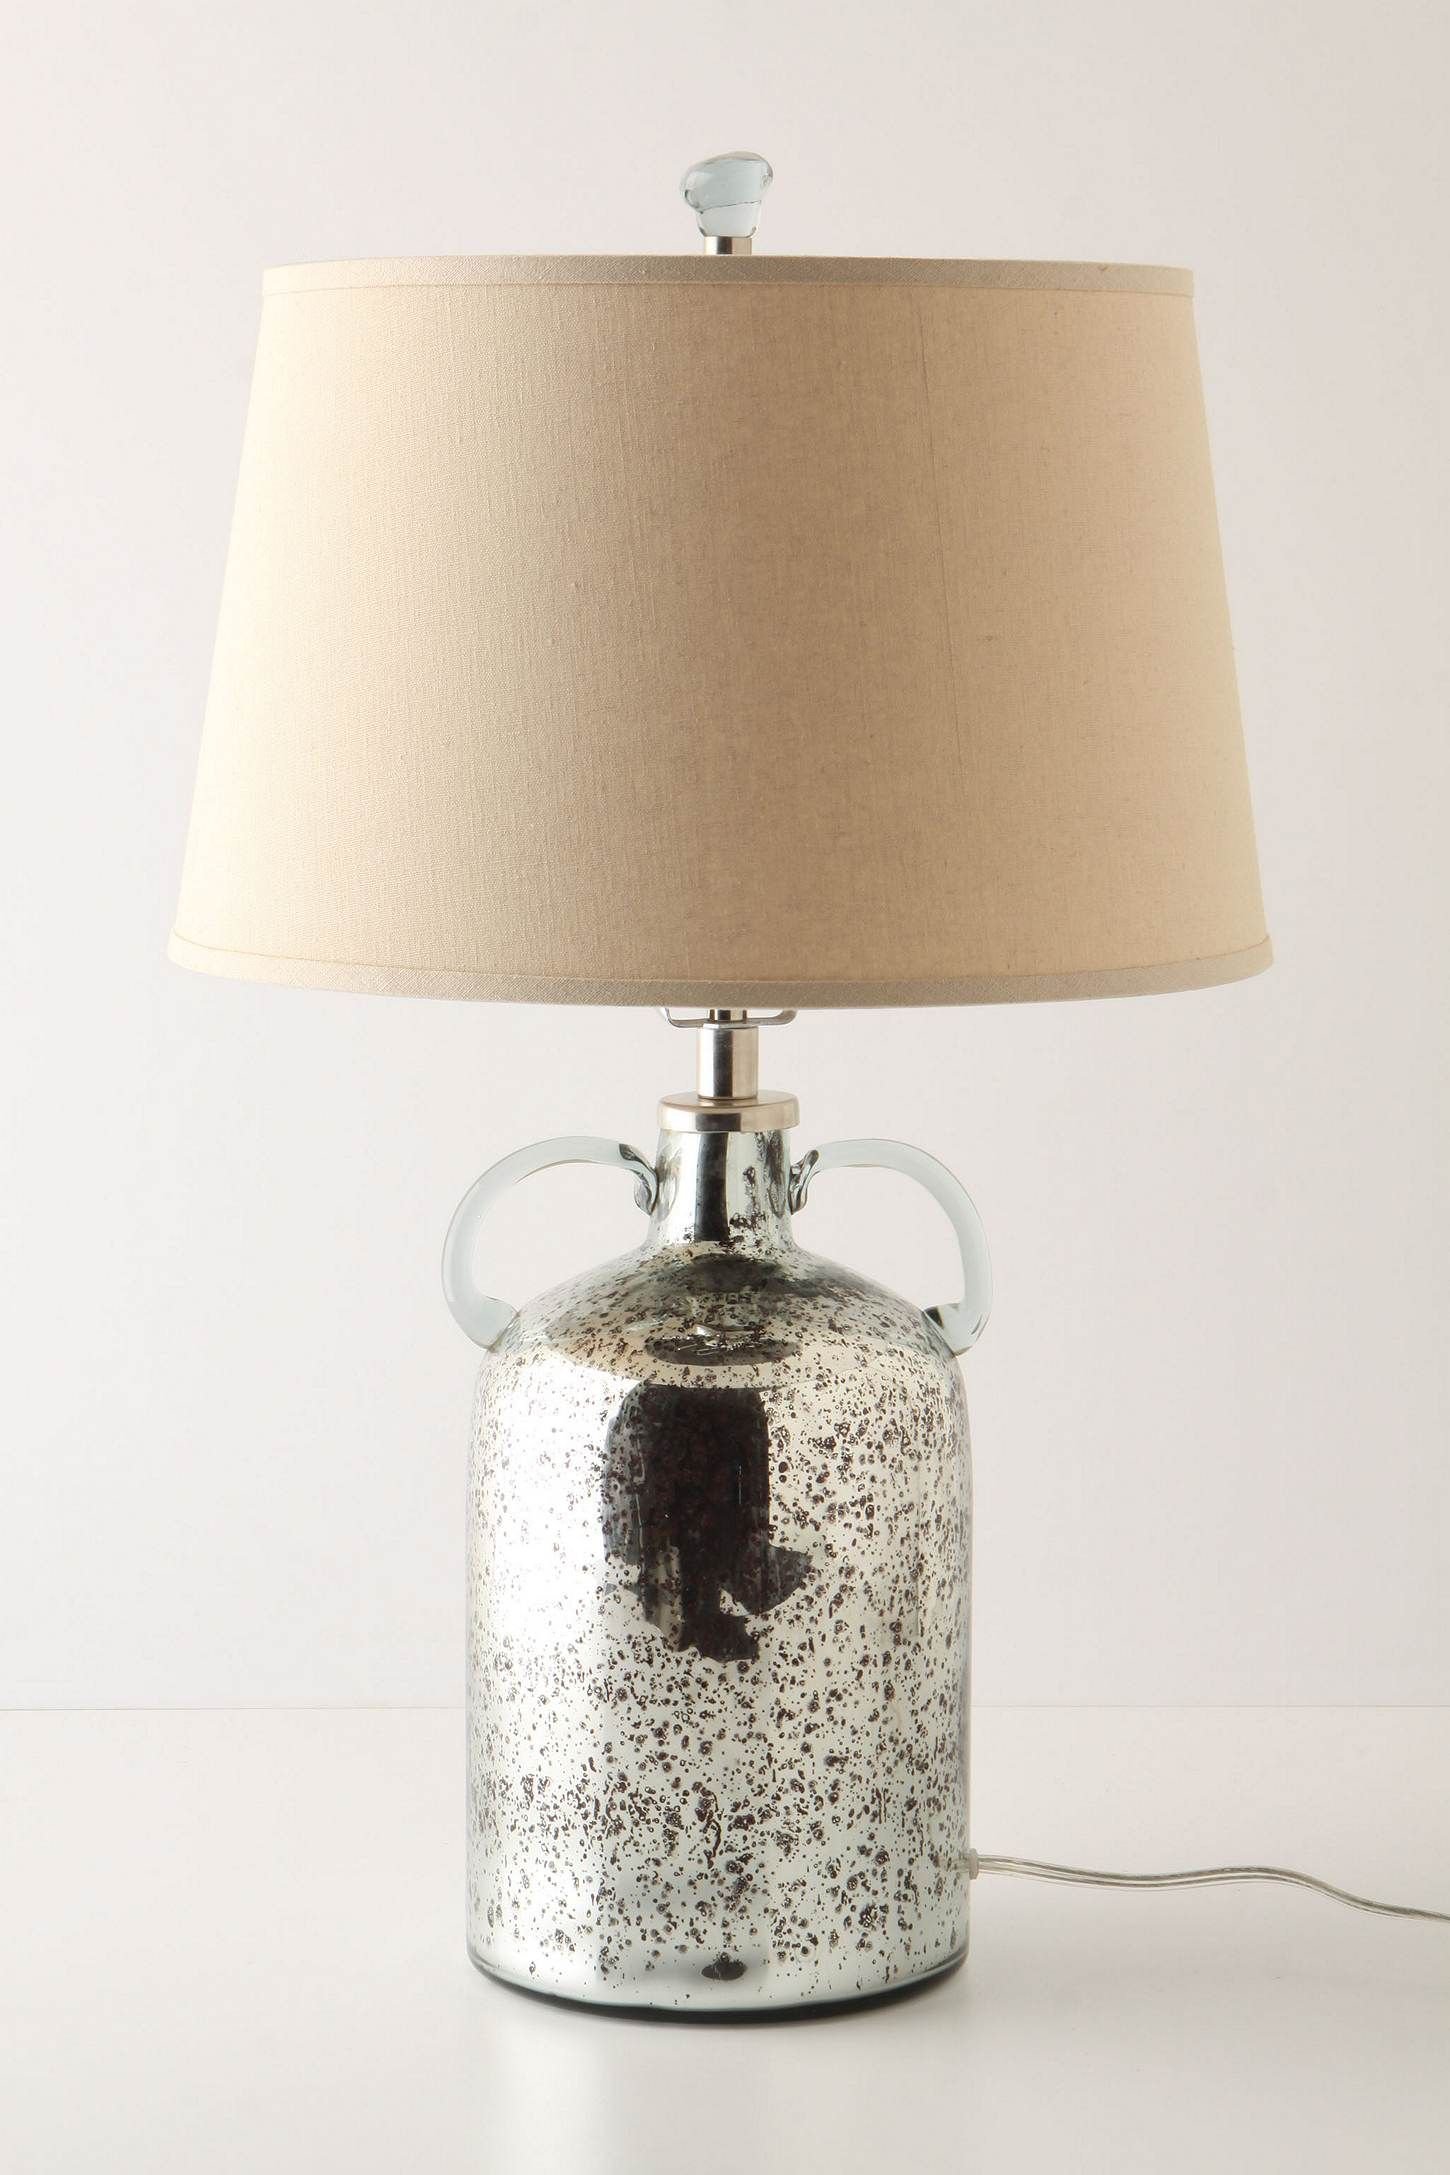 Mirror Jar Lamp Base, Small | Global Goods | Pinterest ...